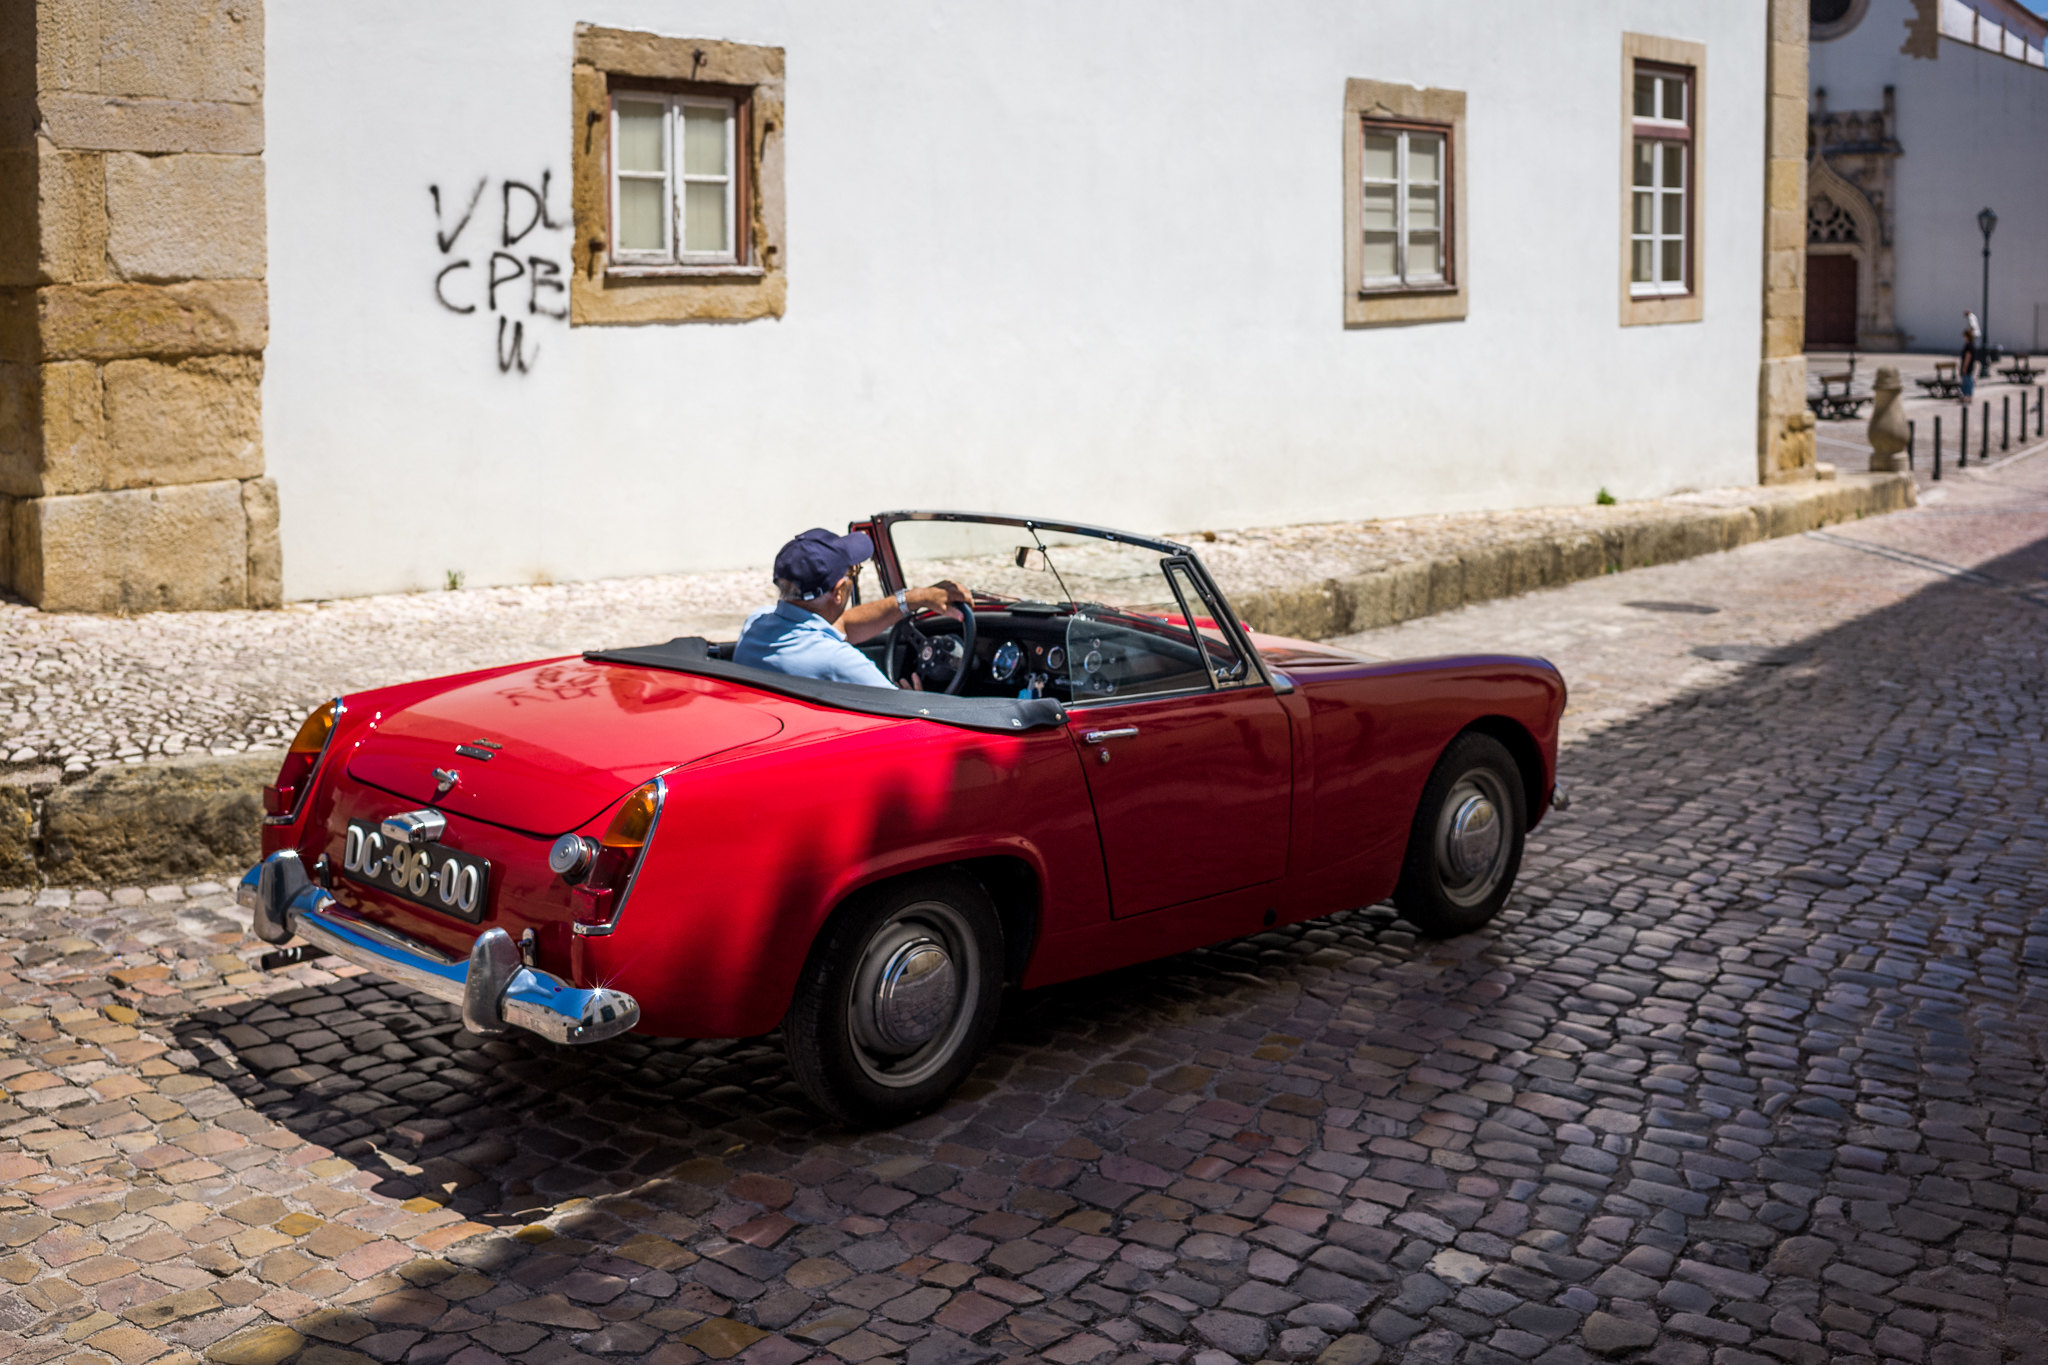 An Old Car in an Ancient Street